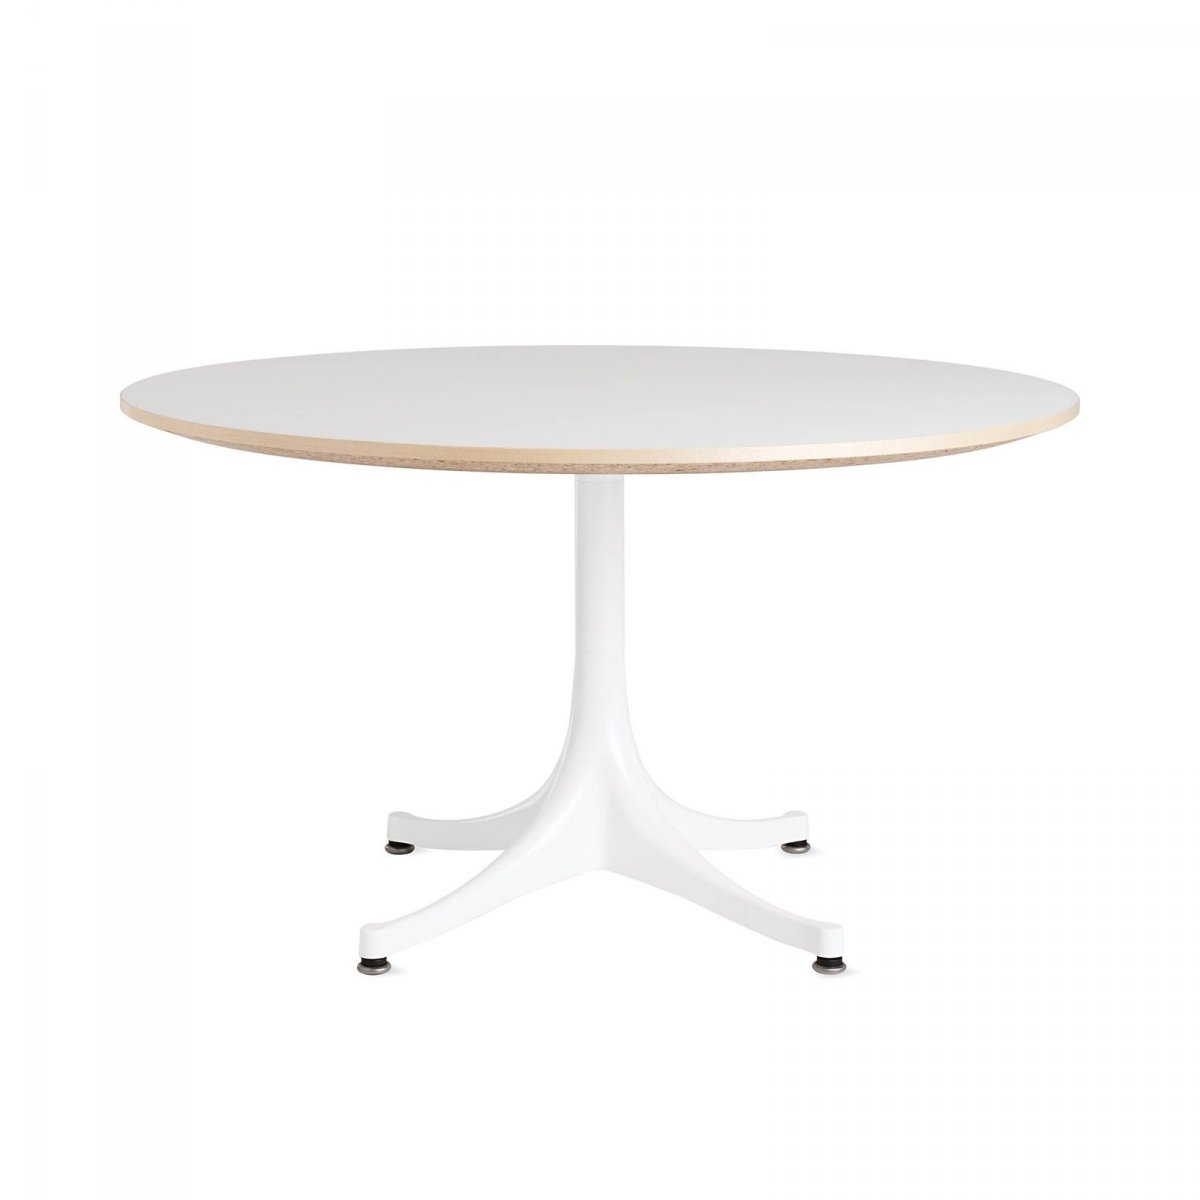 Nelson Pedestal Table 5452, white top with white base.